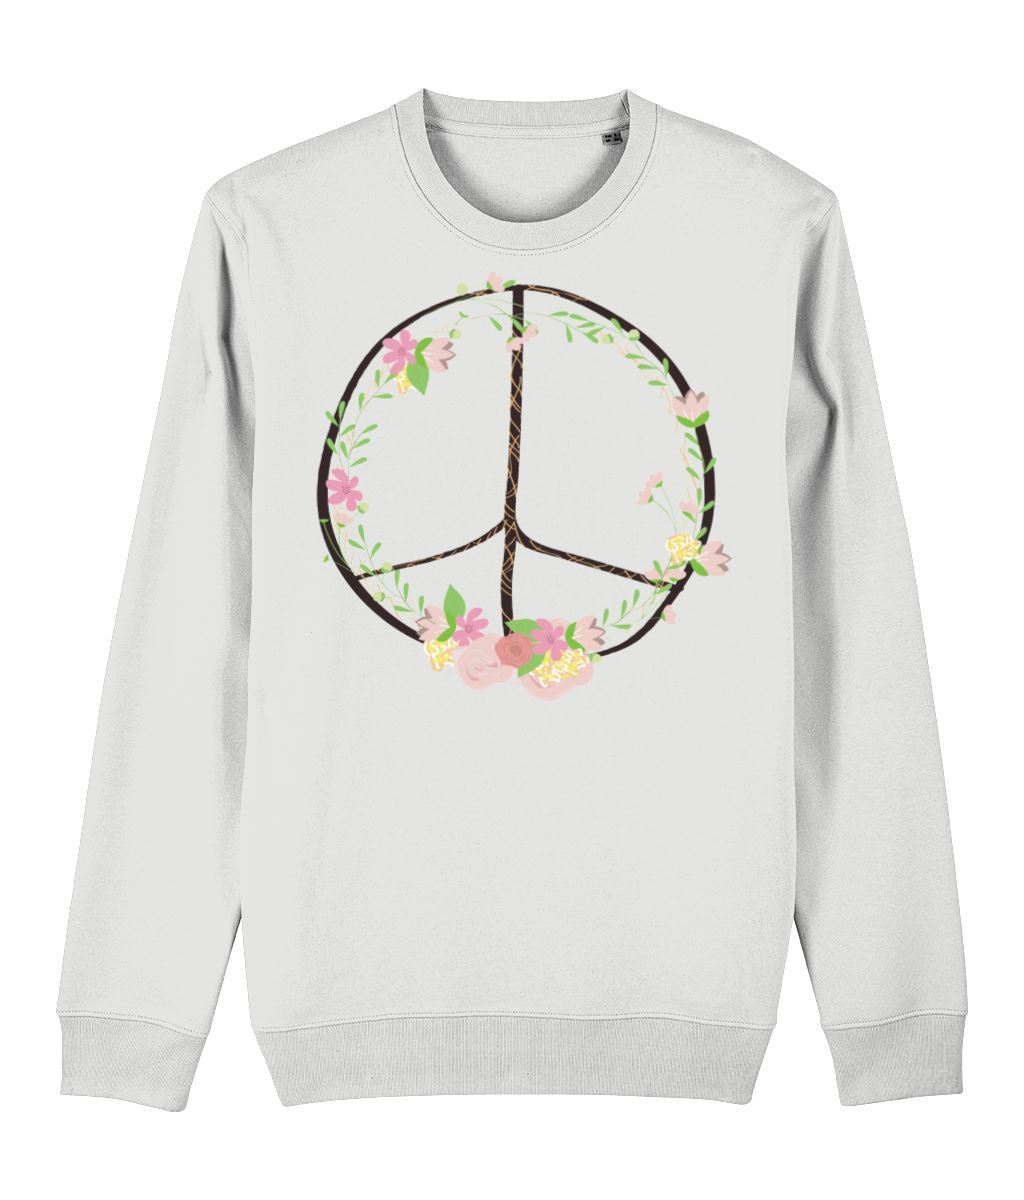 Bohemian Peace Sweatshirt Clothing IndianBelieves White X-Small